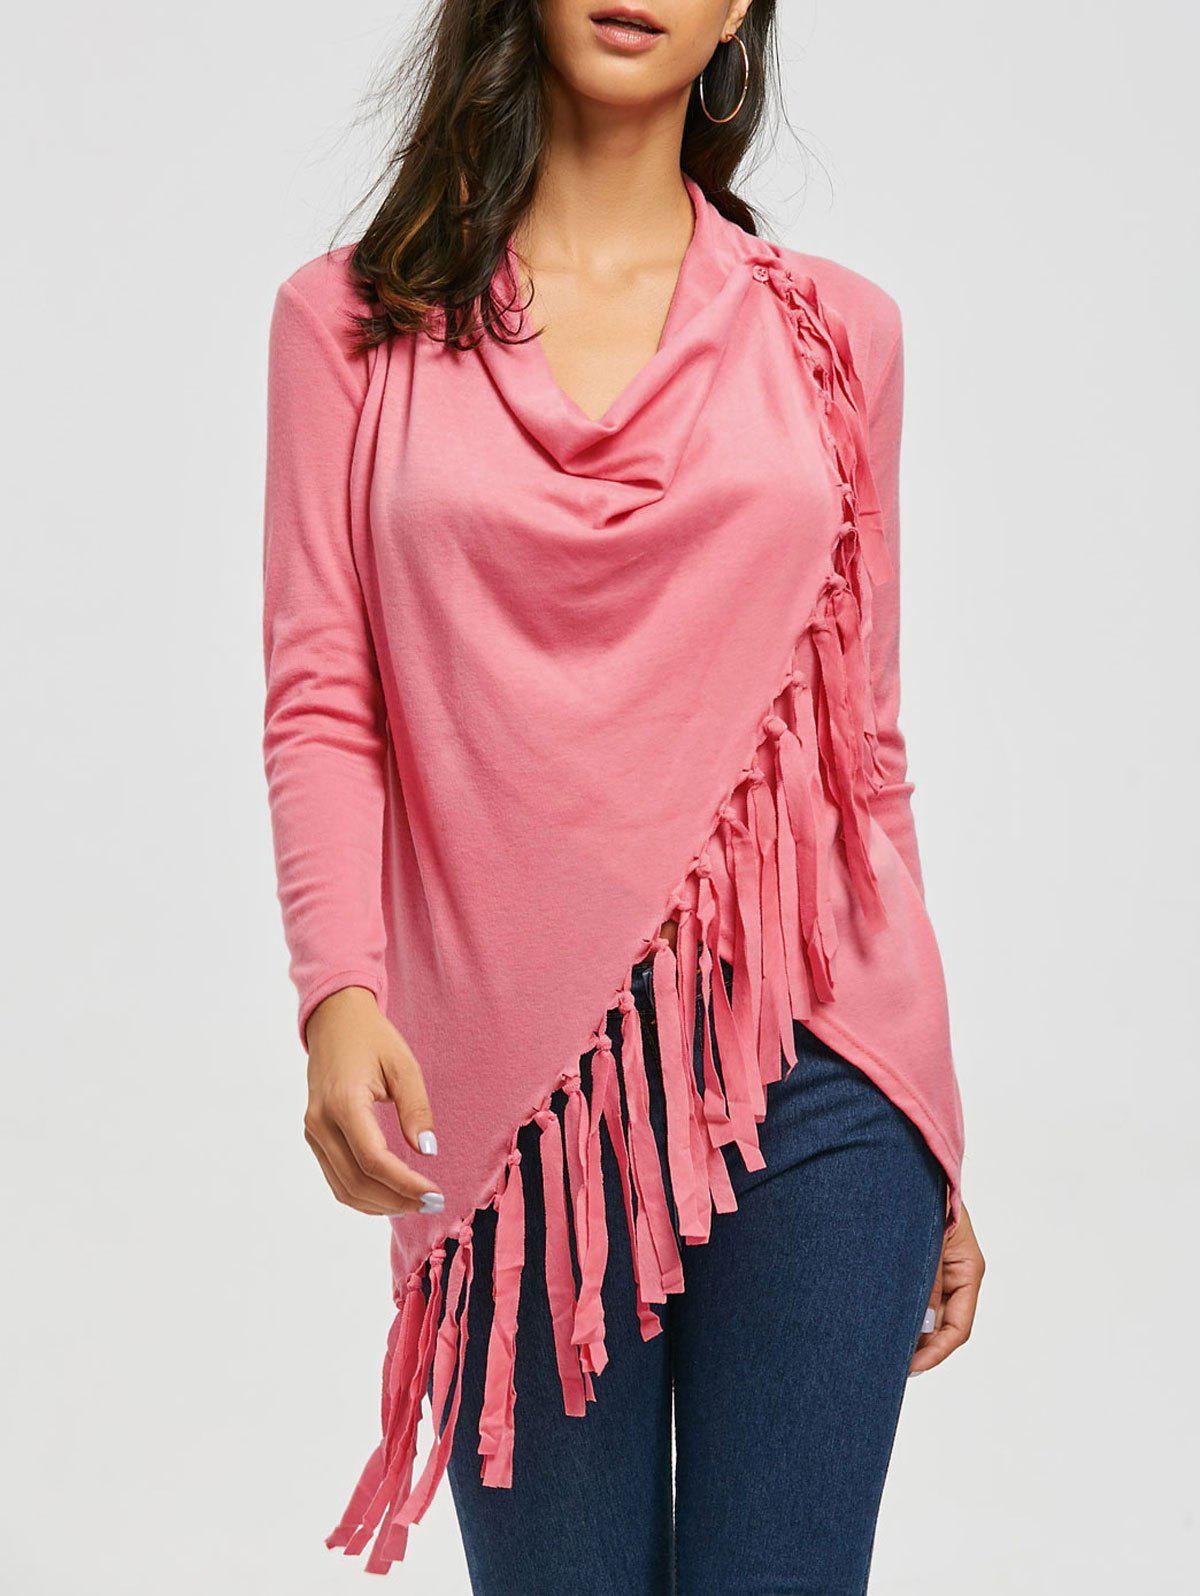 Tassel Asymmetric Long Sleeve TopWOMEN<br><br>Size: S; Color: PINK; Material: Polyester; Sleeve Length: Full; Collar: Cowl Neck; Style: Fashion; Embellishment: Tassel; Pattern Type: Solid; Weight: 0.3300kg; Package Contents: 1 x T-Shirt;